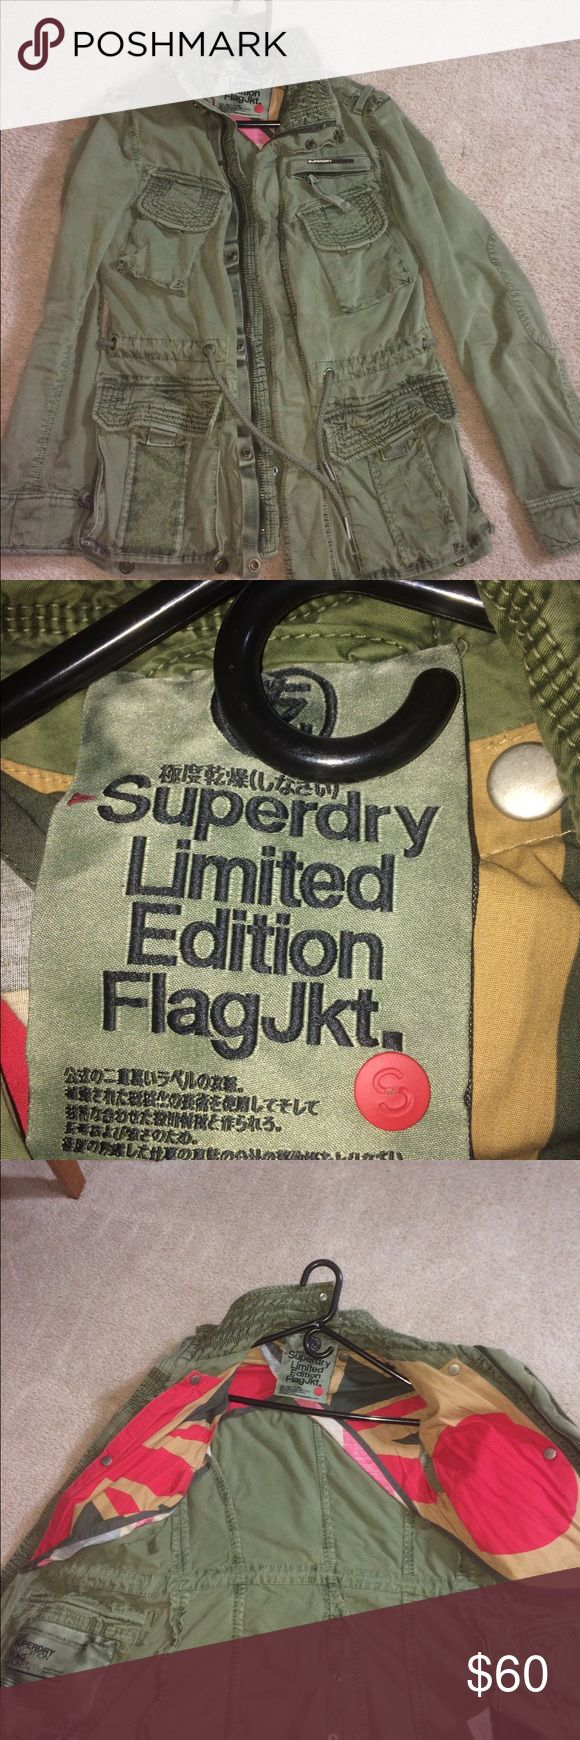 Superdry sz small green military jacket Superdry sz small green military jacket, only sells, no trades. Like new!! Superdry Jackets & Coats Military & Field